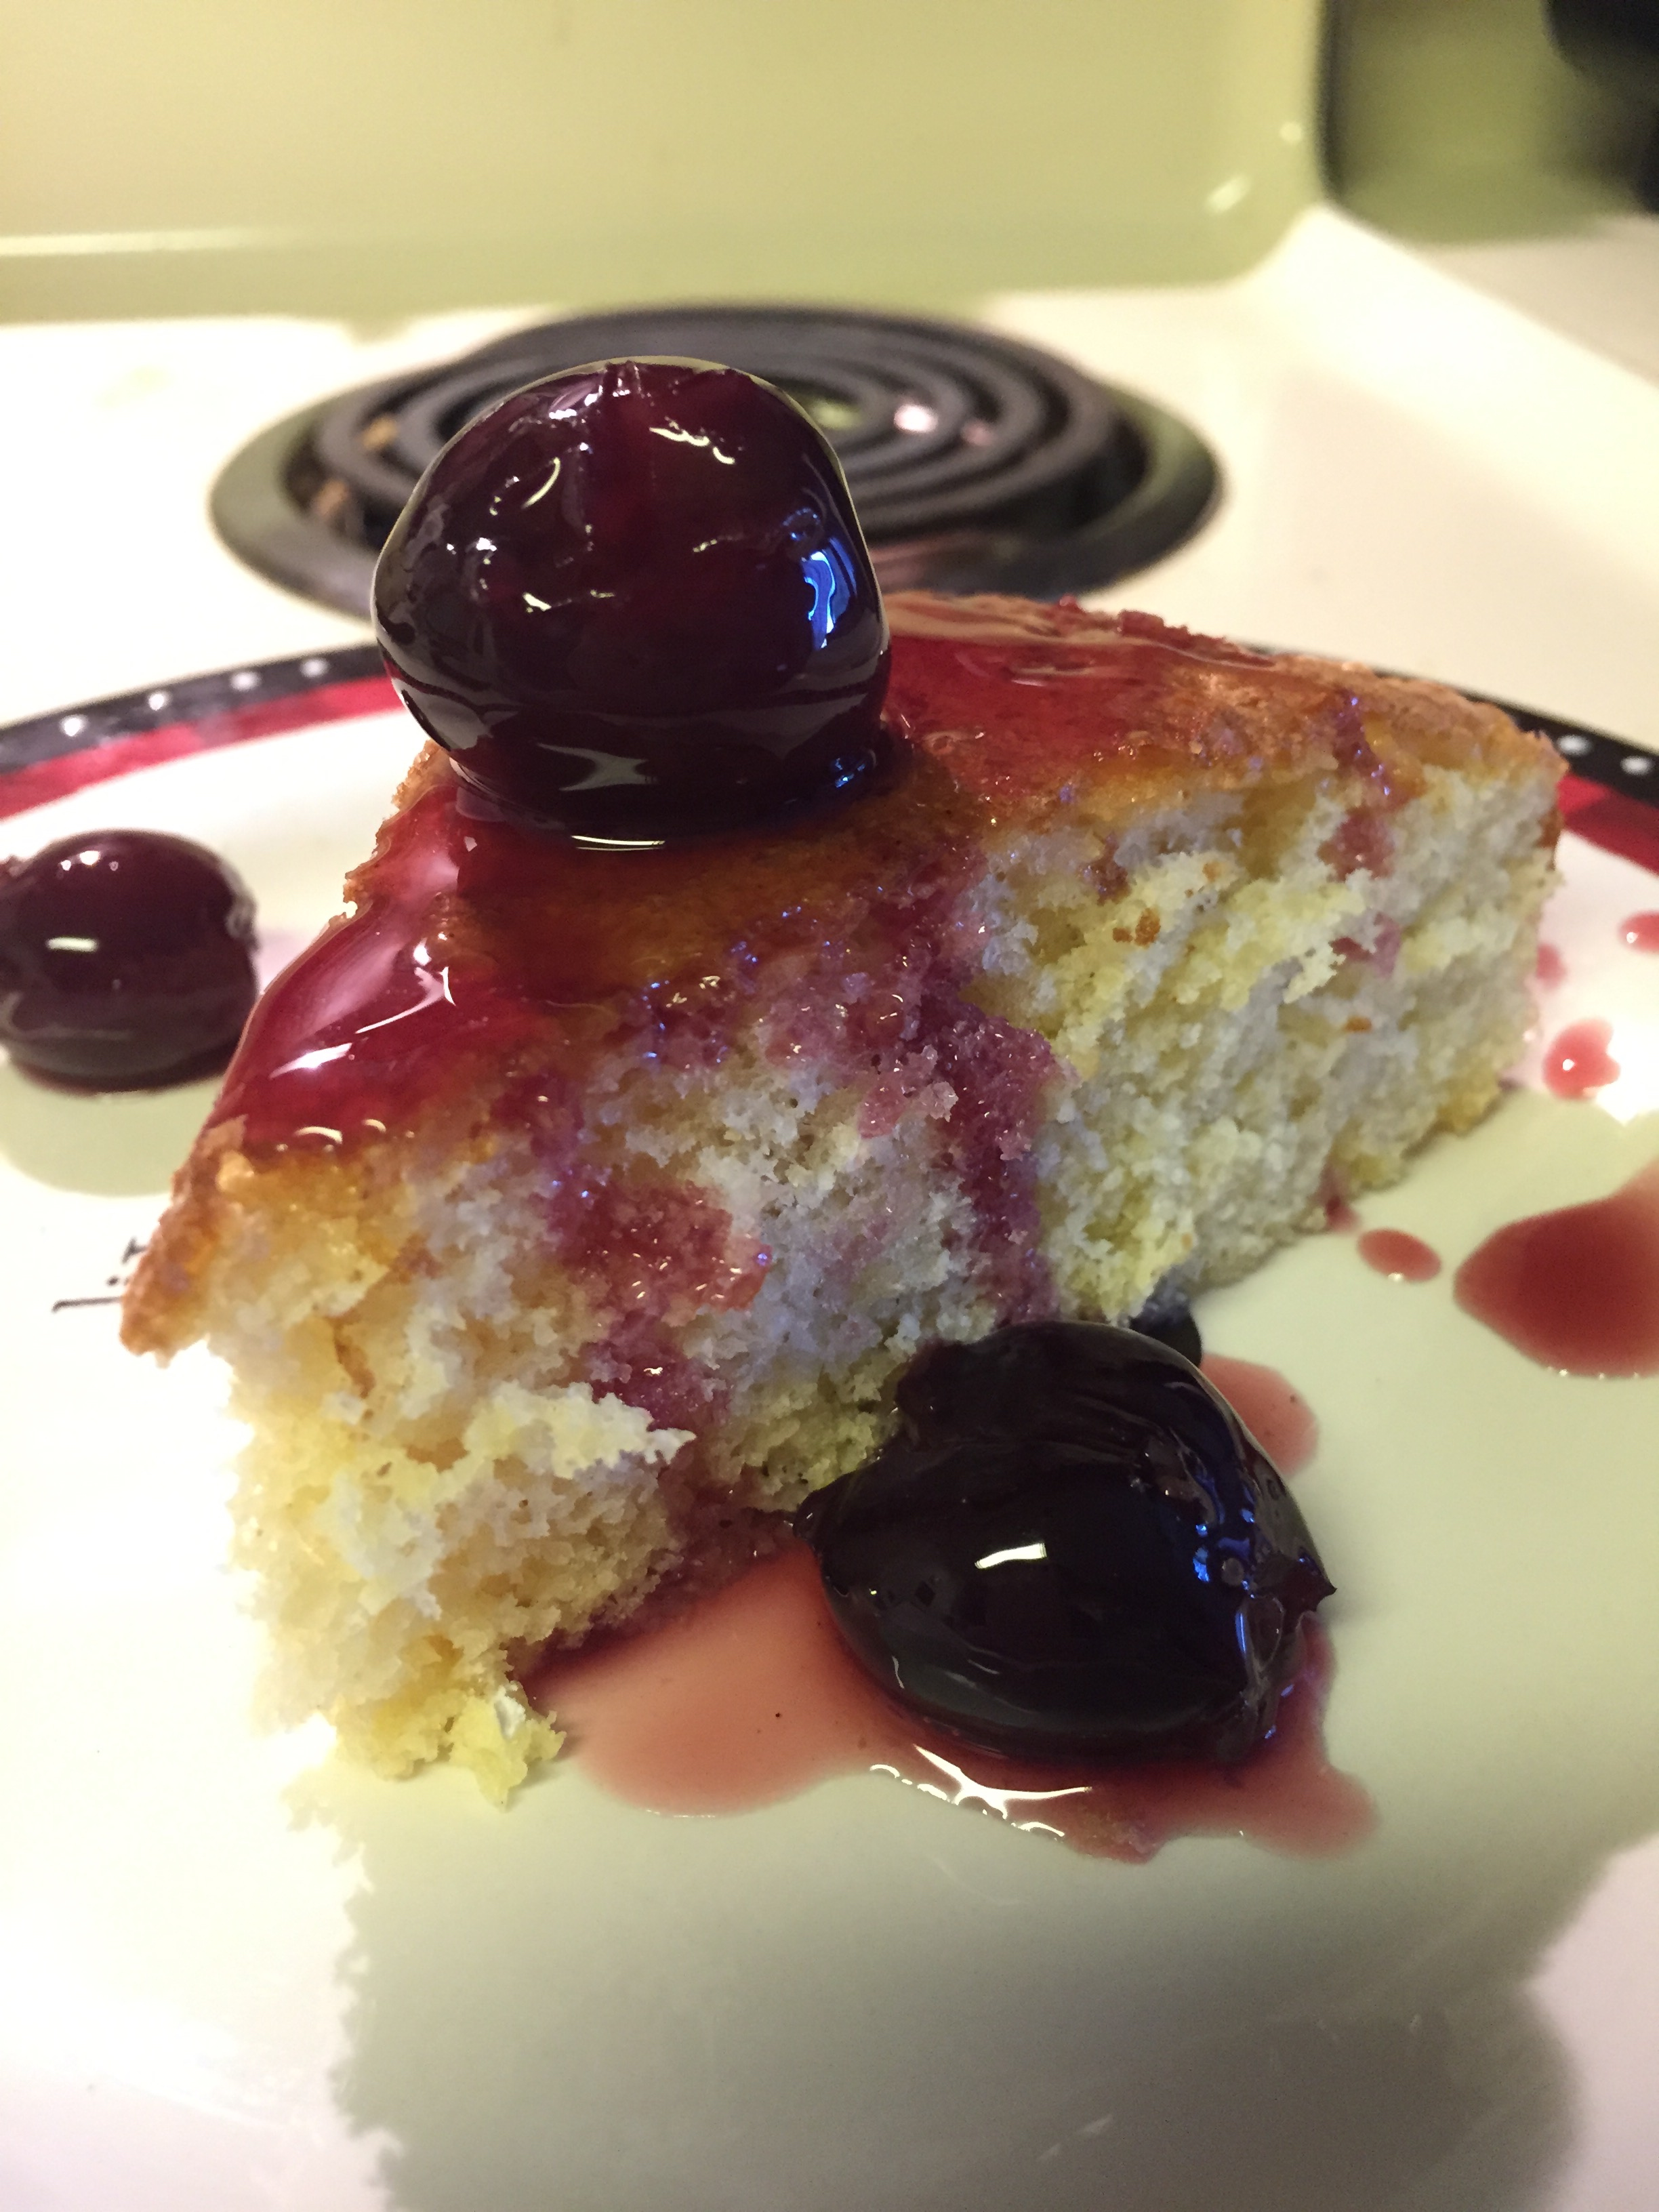 Dessert: Olive Oil Cake with Cherry Compote